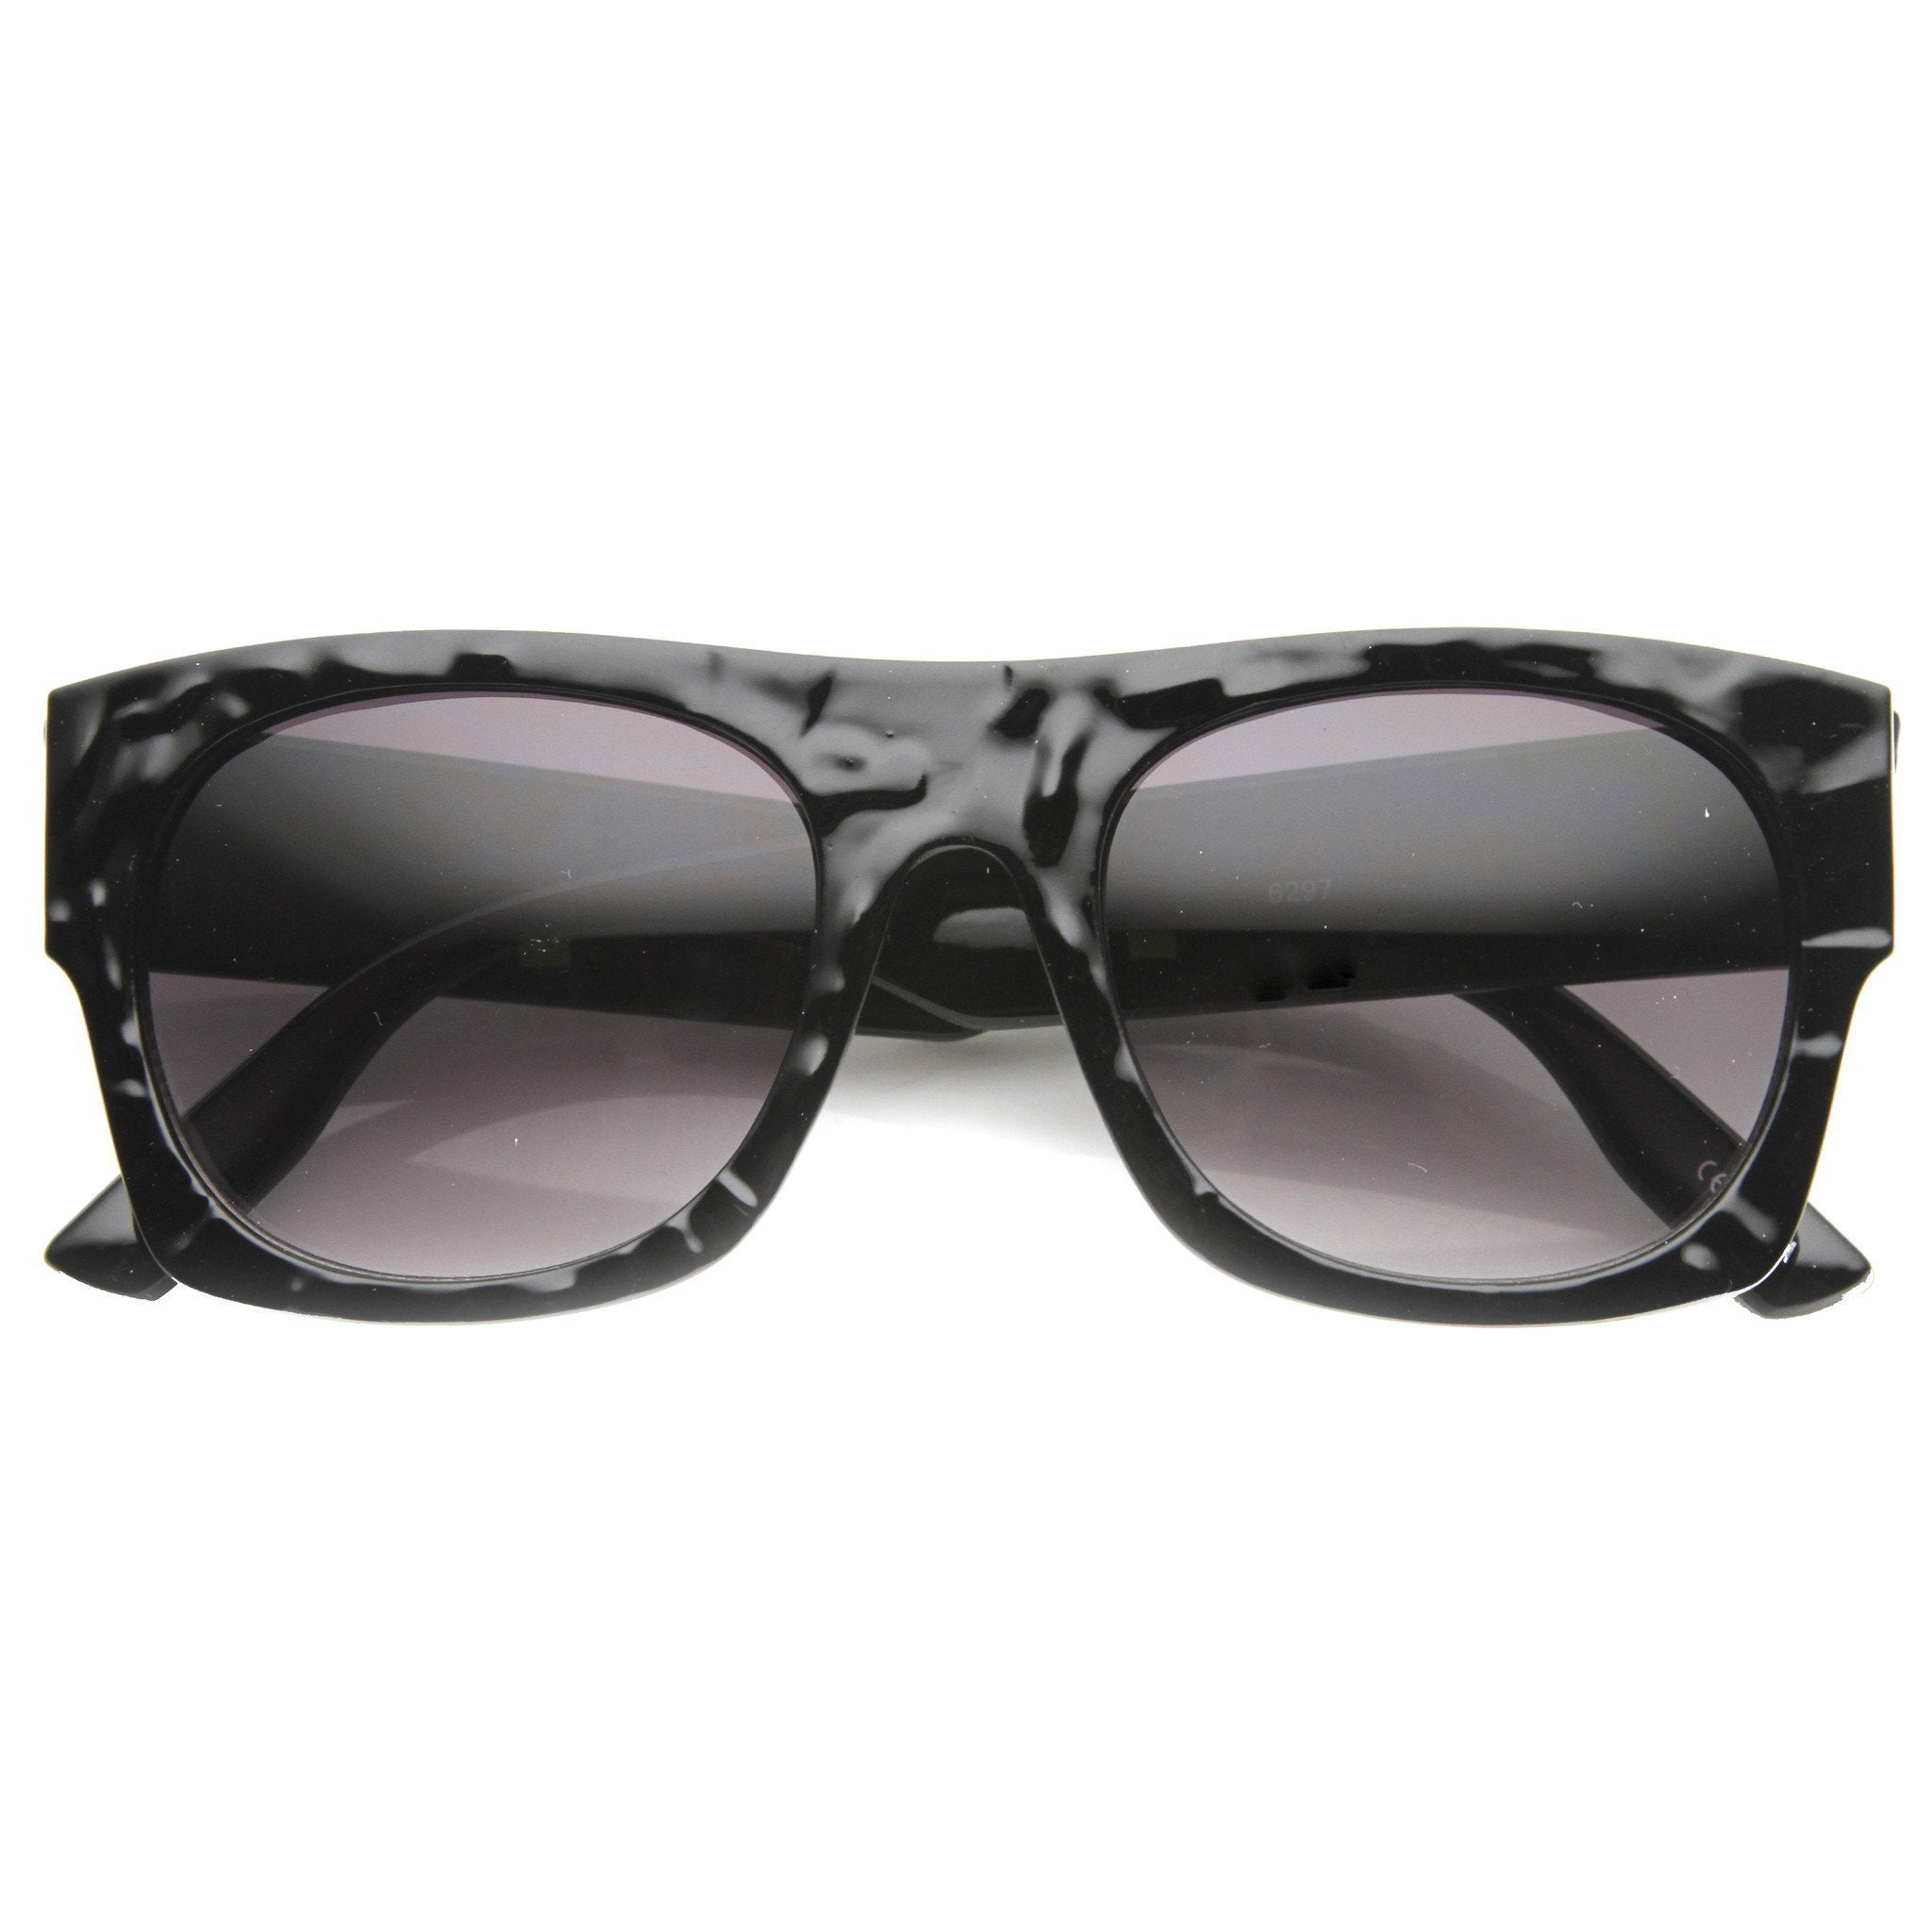 Unique Flat Top Textured Sunglasses 9865 - A2Depot